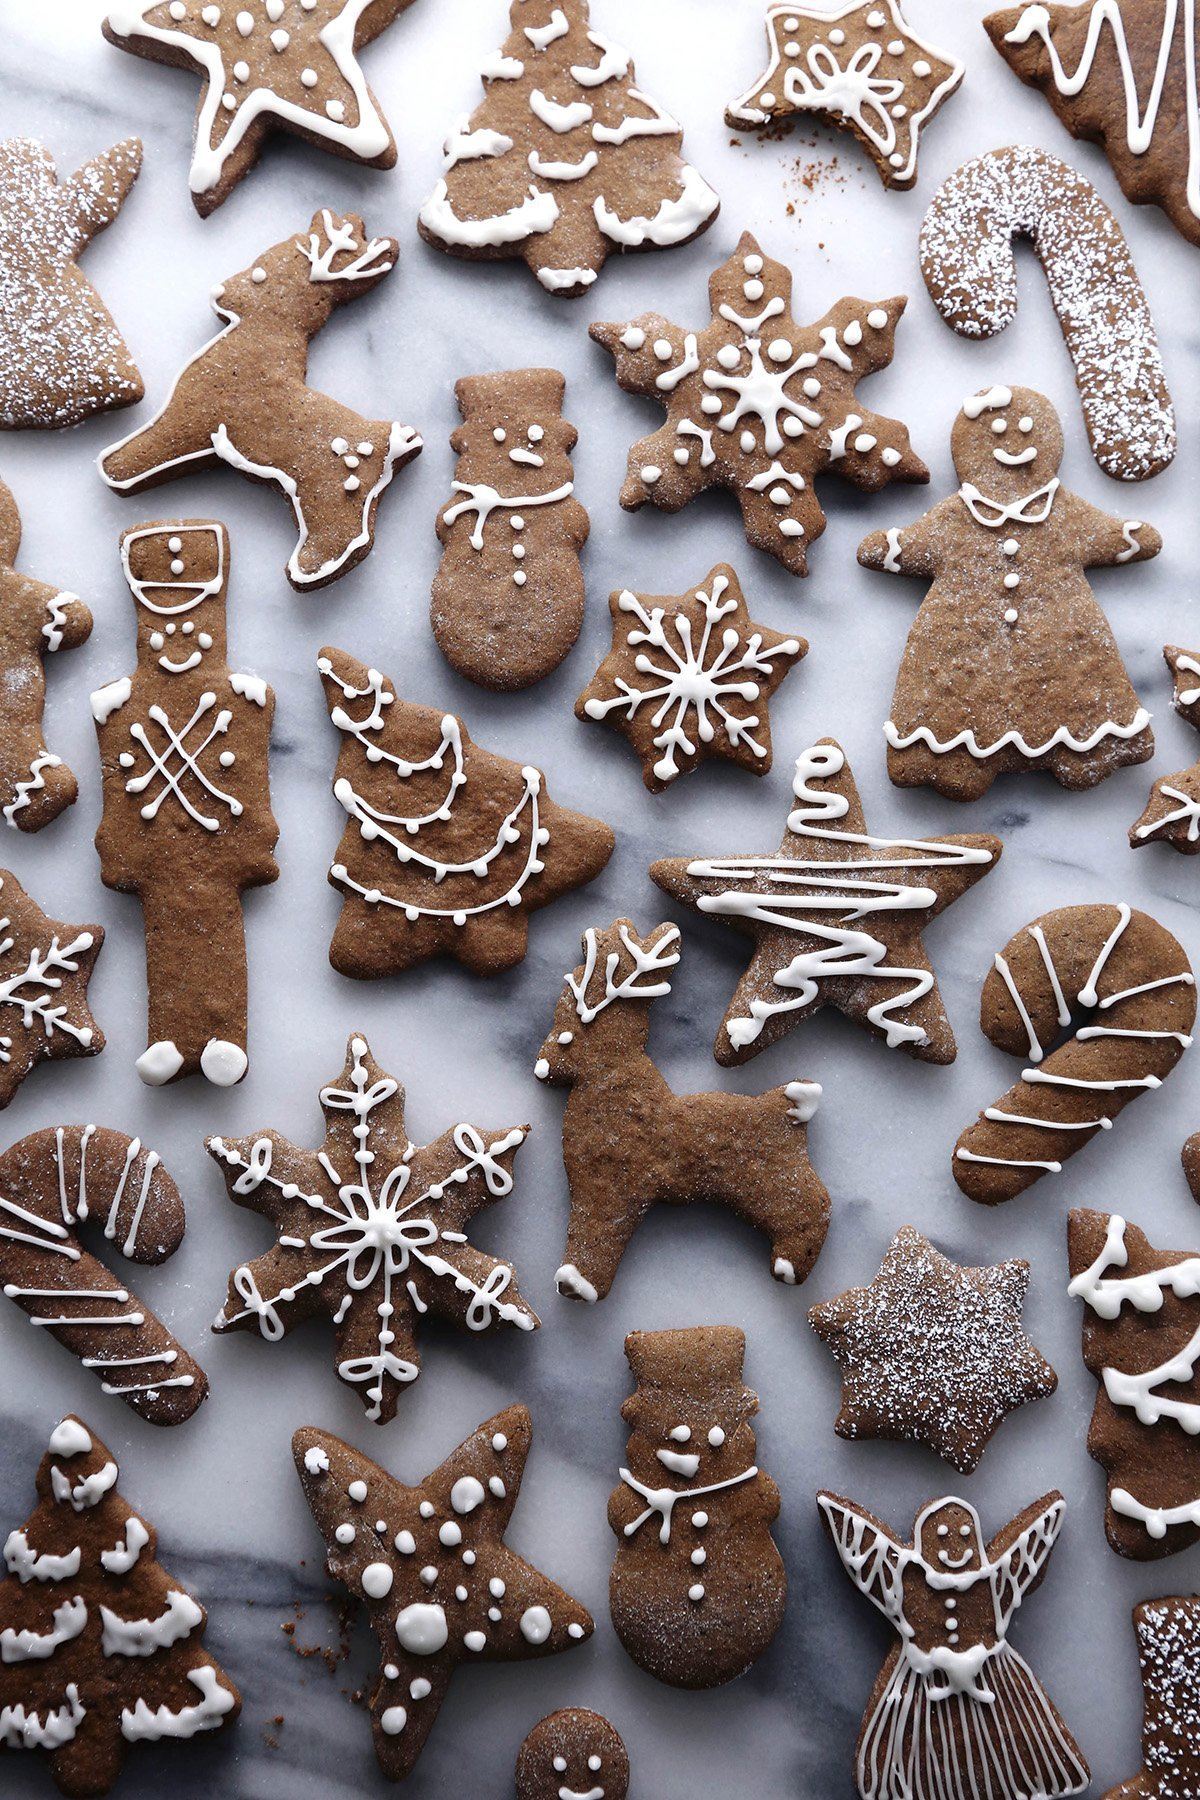 Gluten and Refined Sugar Free Gingerbread Cookies